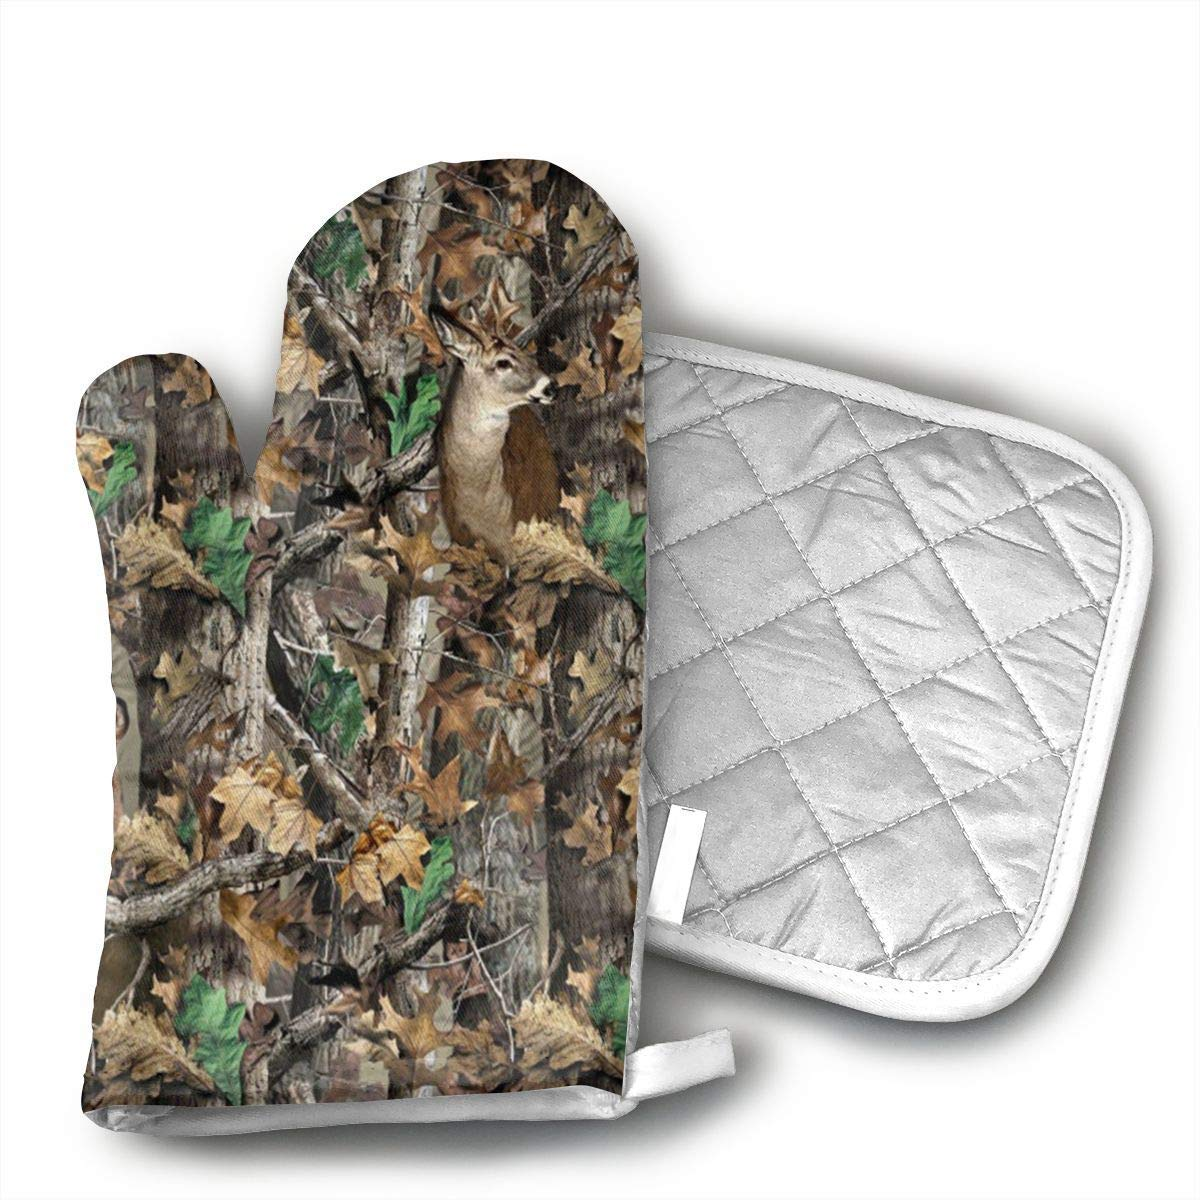 Realtree Camo Wallpapers Oven Mitts Kitchen Gloves and Pot Holders 2pcs for Kitchen Set with Cotton Neoprene Silicone Non-Slip Grip,Heat Resistant,Oven Gloves for BBQ Cooking Baking Grilling